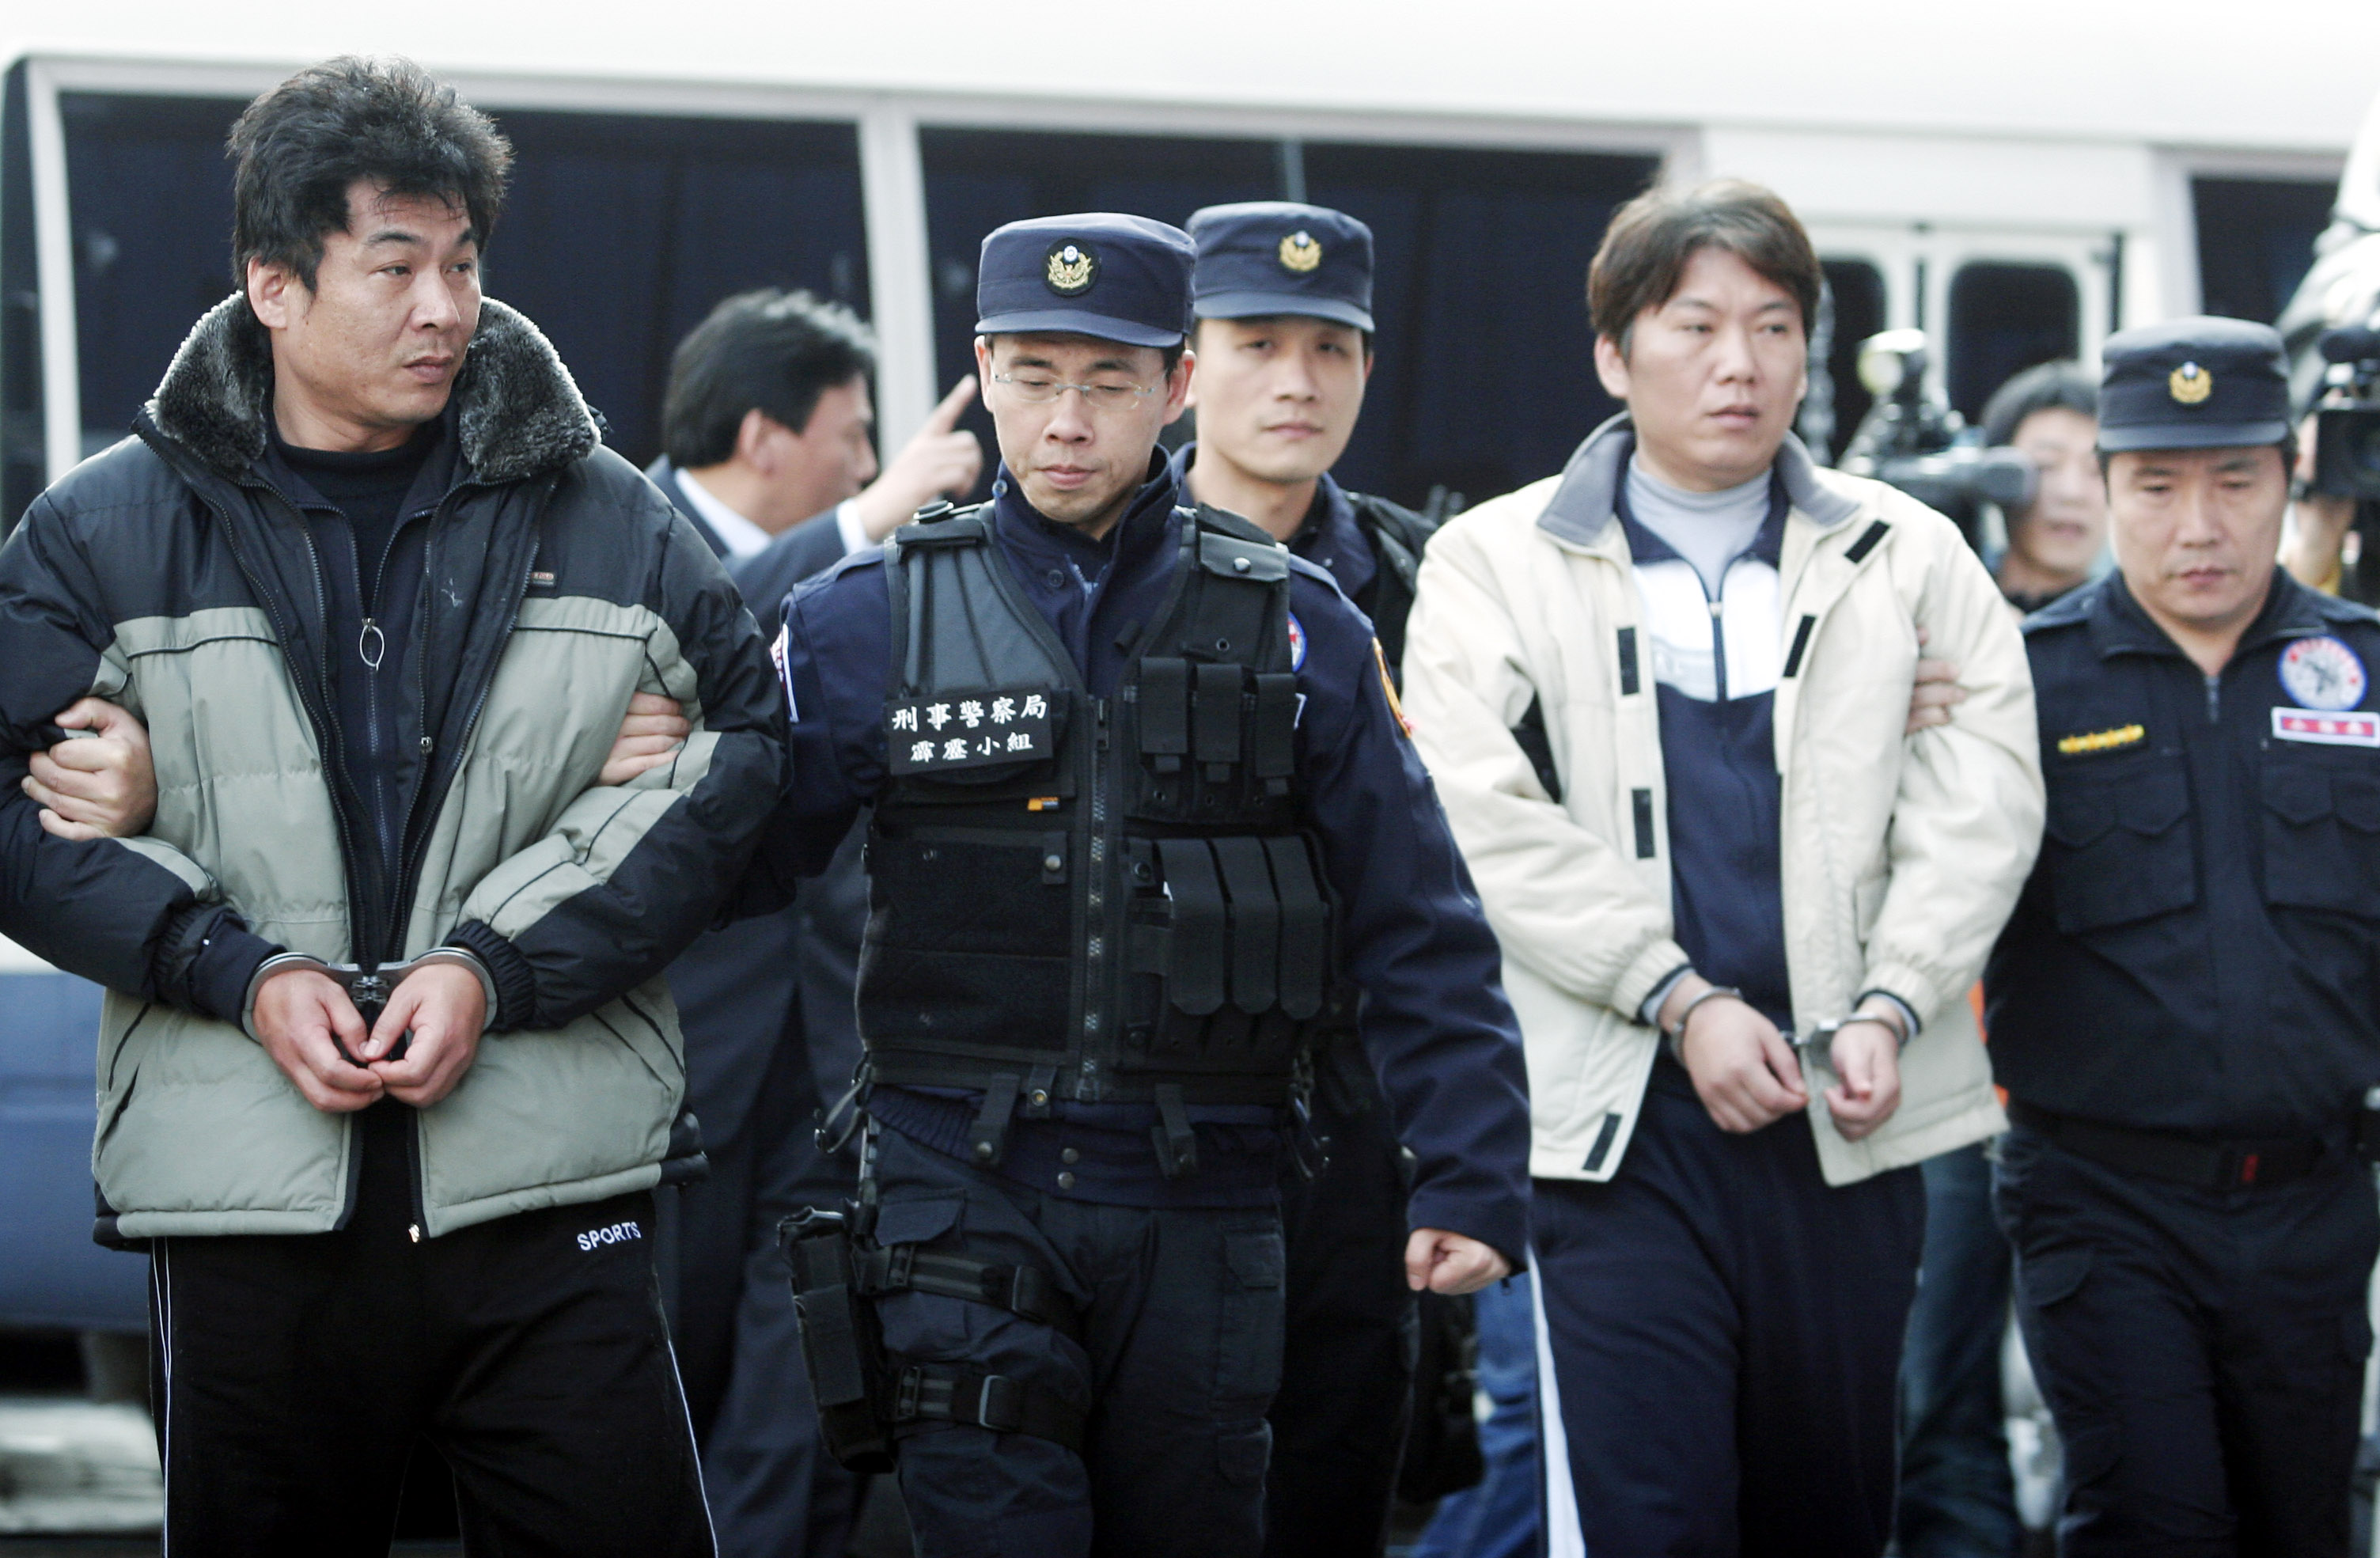 Armored car robbery suspects, Lee Han-yang, left, and his younger brother, Lee Chin-tsan return to Taiwan escorted by police at the Criminal Investiga...